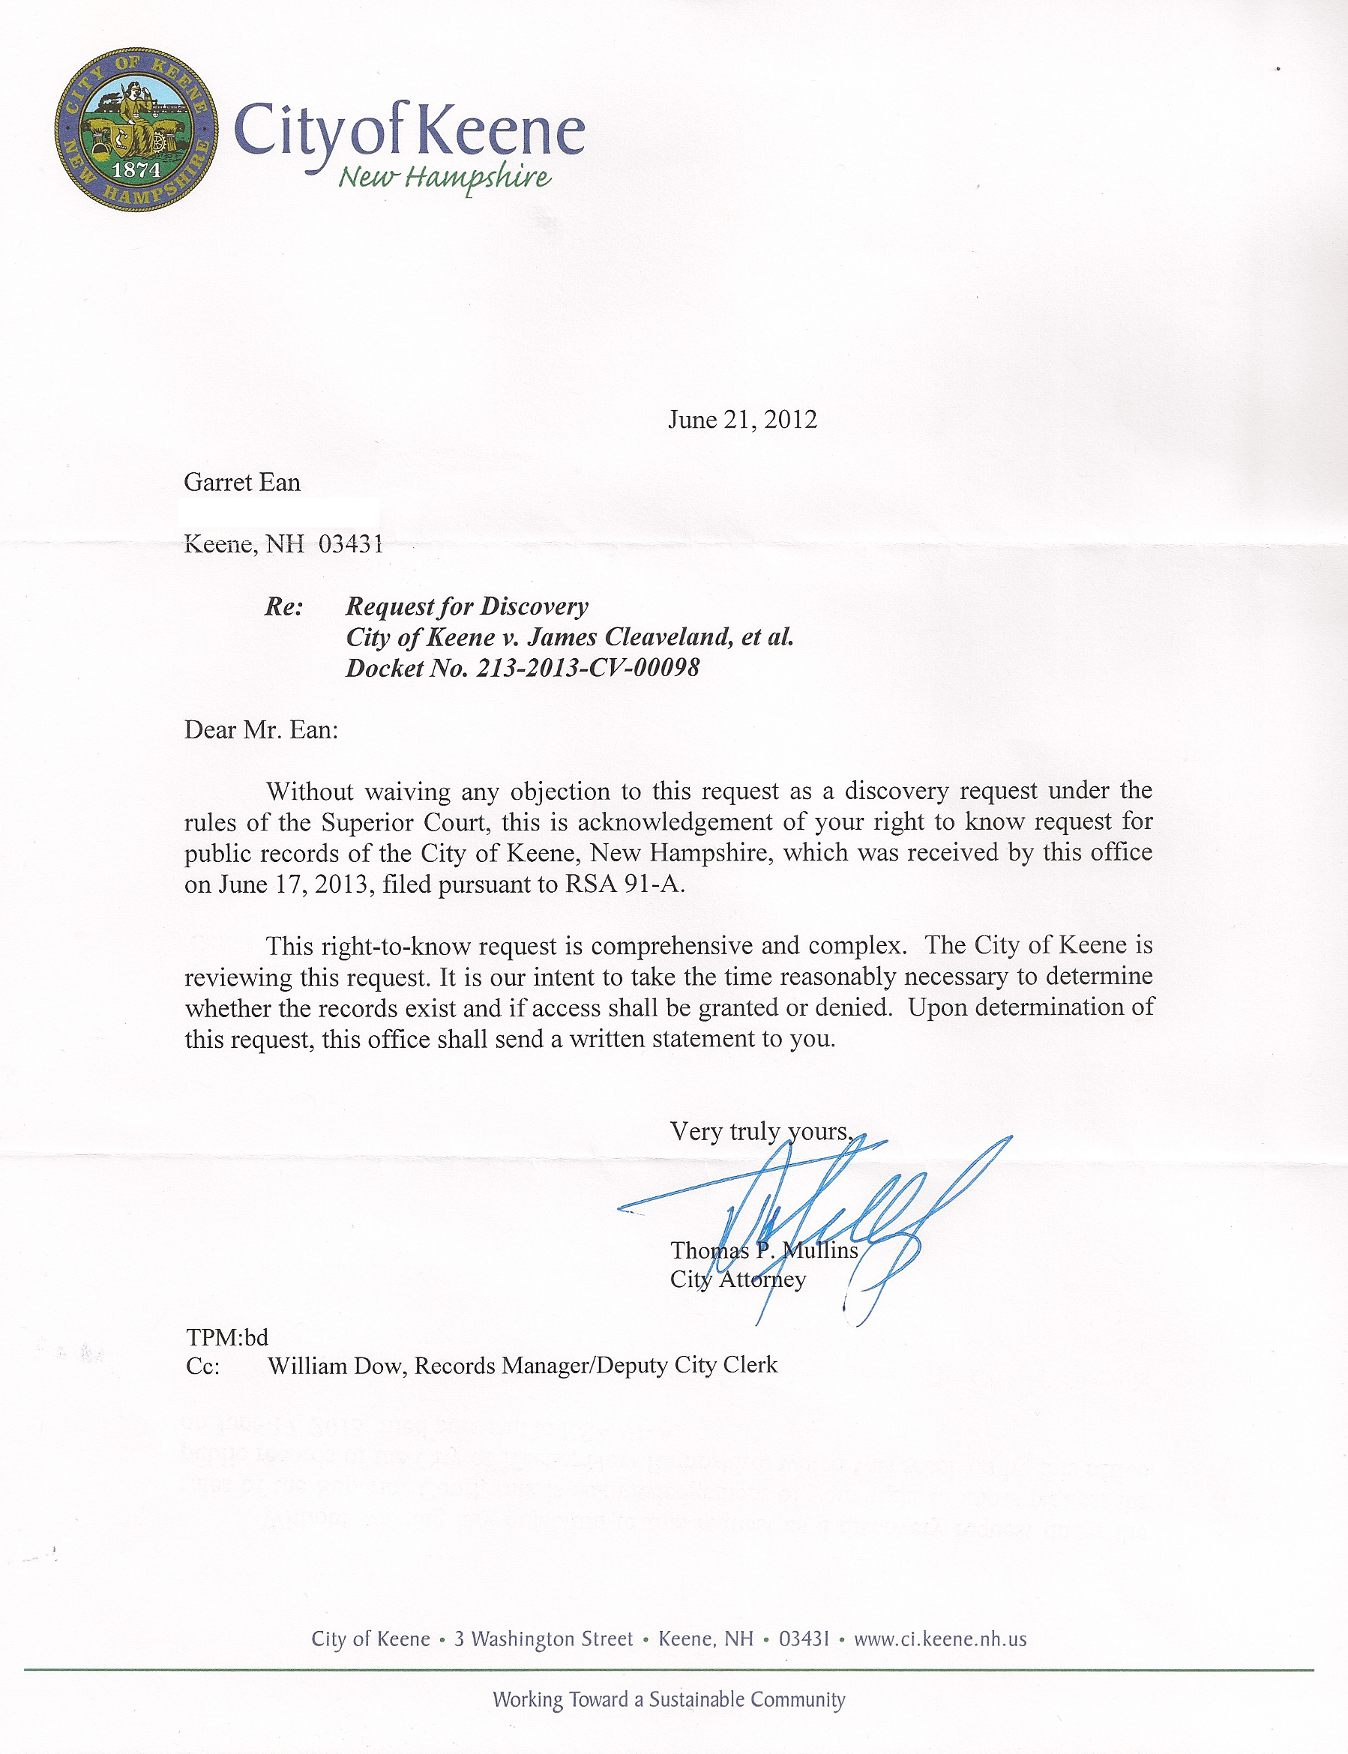 meet and confer letter re deposition